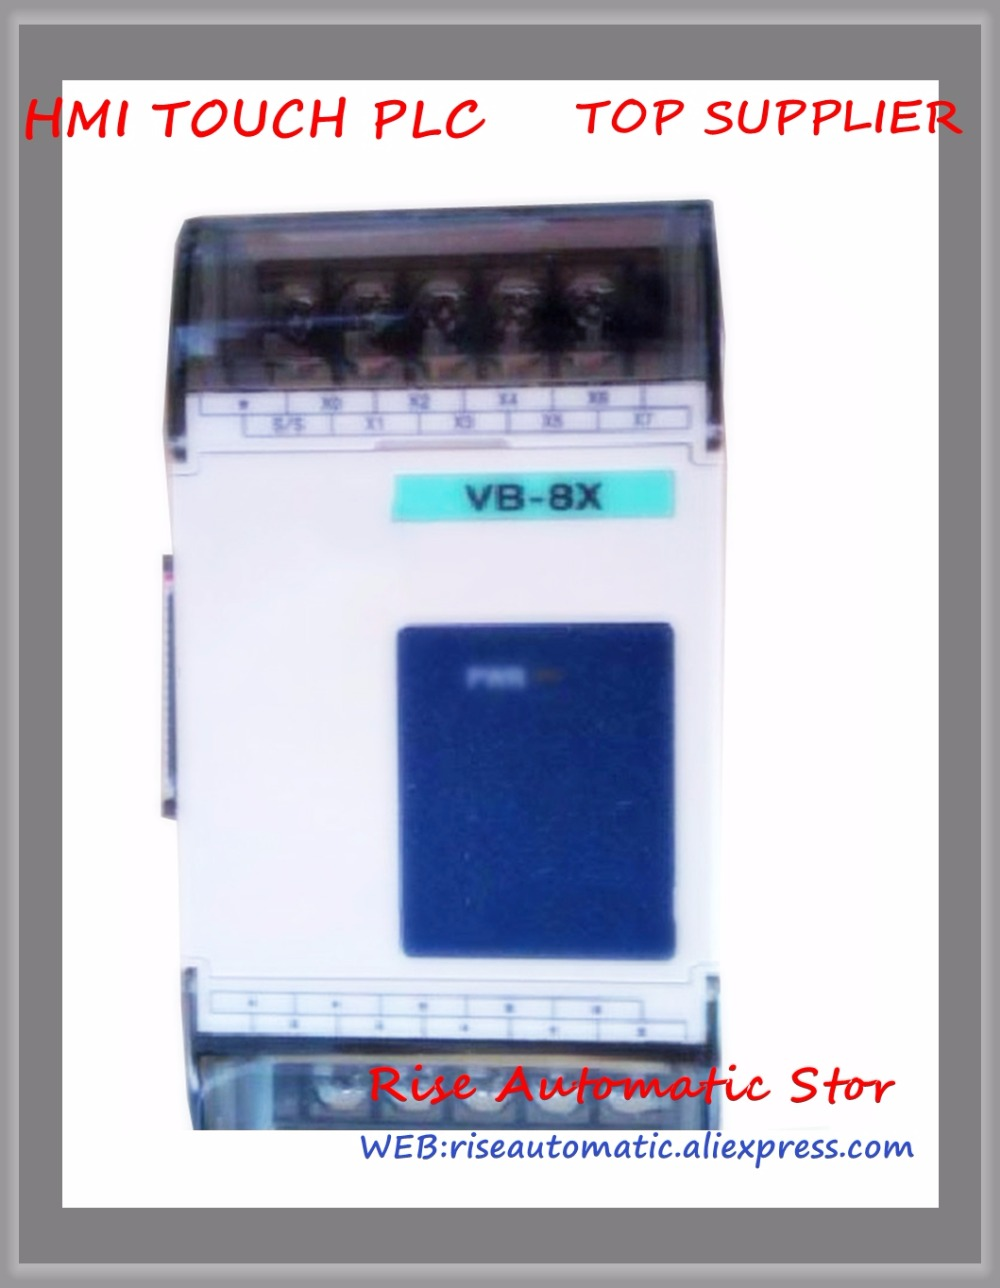 VB-8X PLC New Original 24VDC 8 point input Expansion Module plc srt2 od04